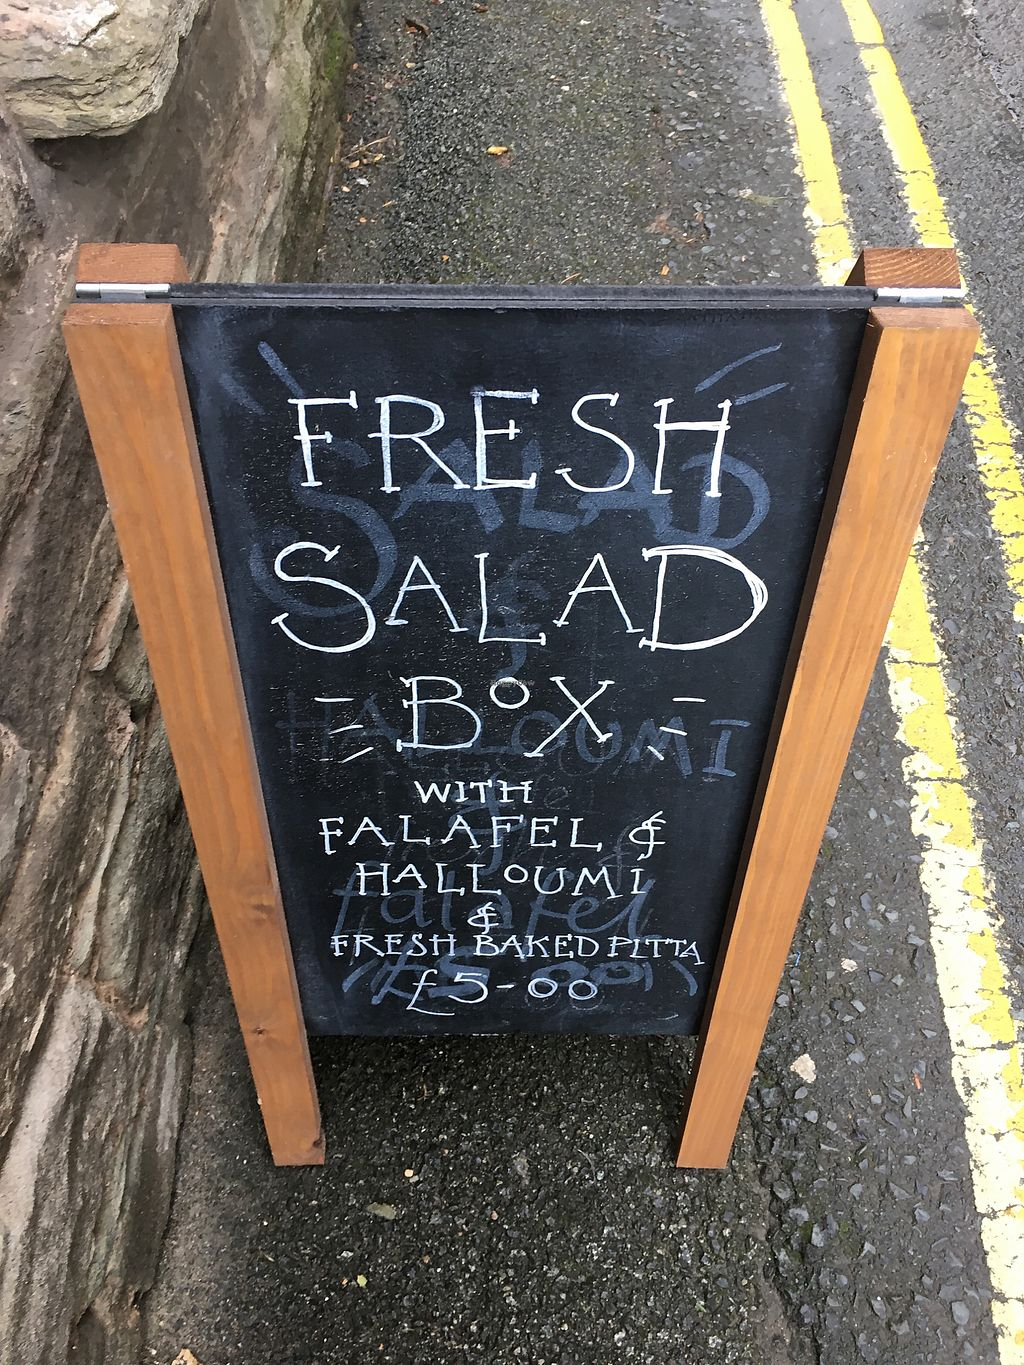 """Photo of The Salad Project  by <a href=""""/members/profile/Spaghetti_monster"""">Spaghetti_monster</a> <br/>signboard  <br/> July 29, 2017  - <a href='/contact/abuse/image/97345/286085'>Report</a>"""